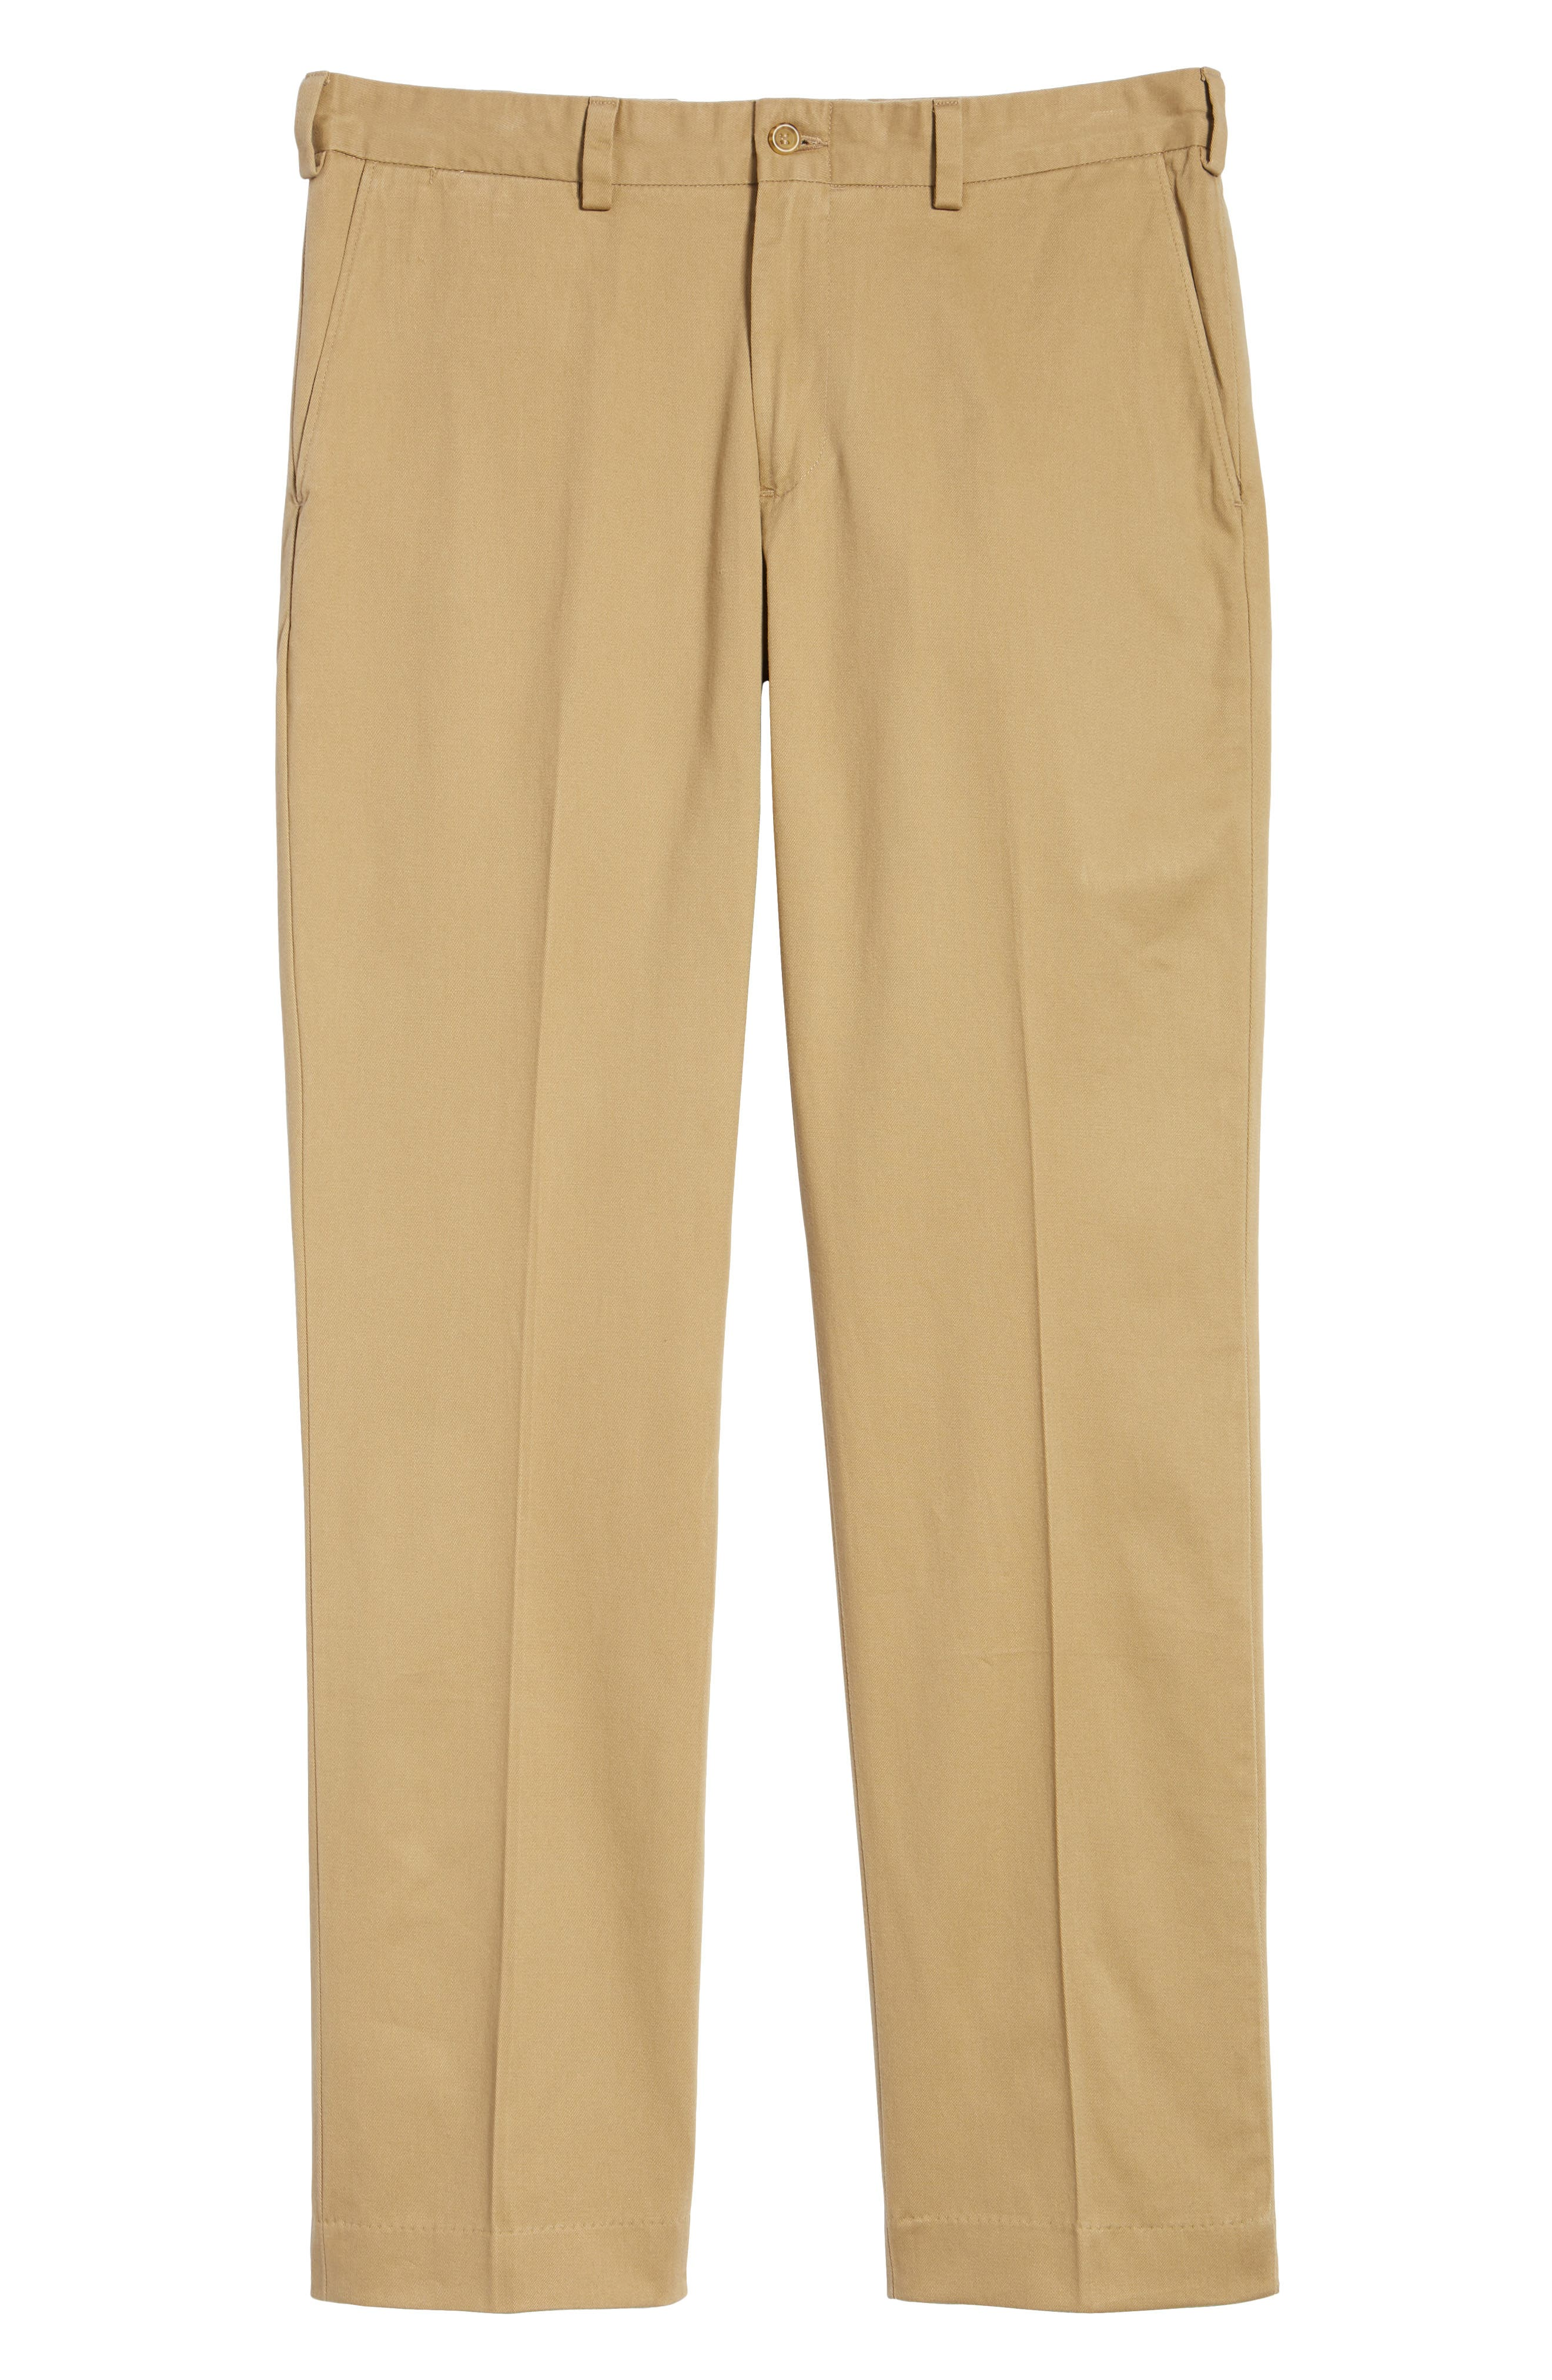 M3 Straight Fit Vintage Twill Flat Front Pants,                             Alternate thumbnail 6, color,                             210